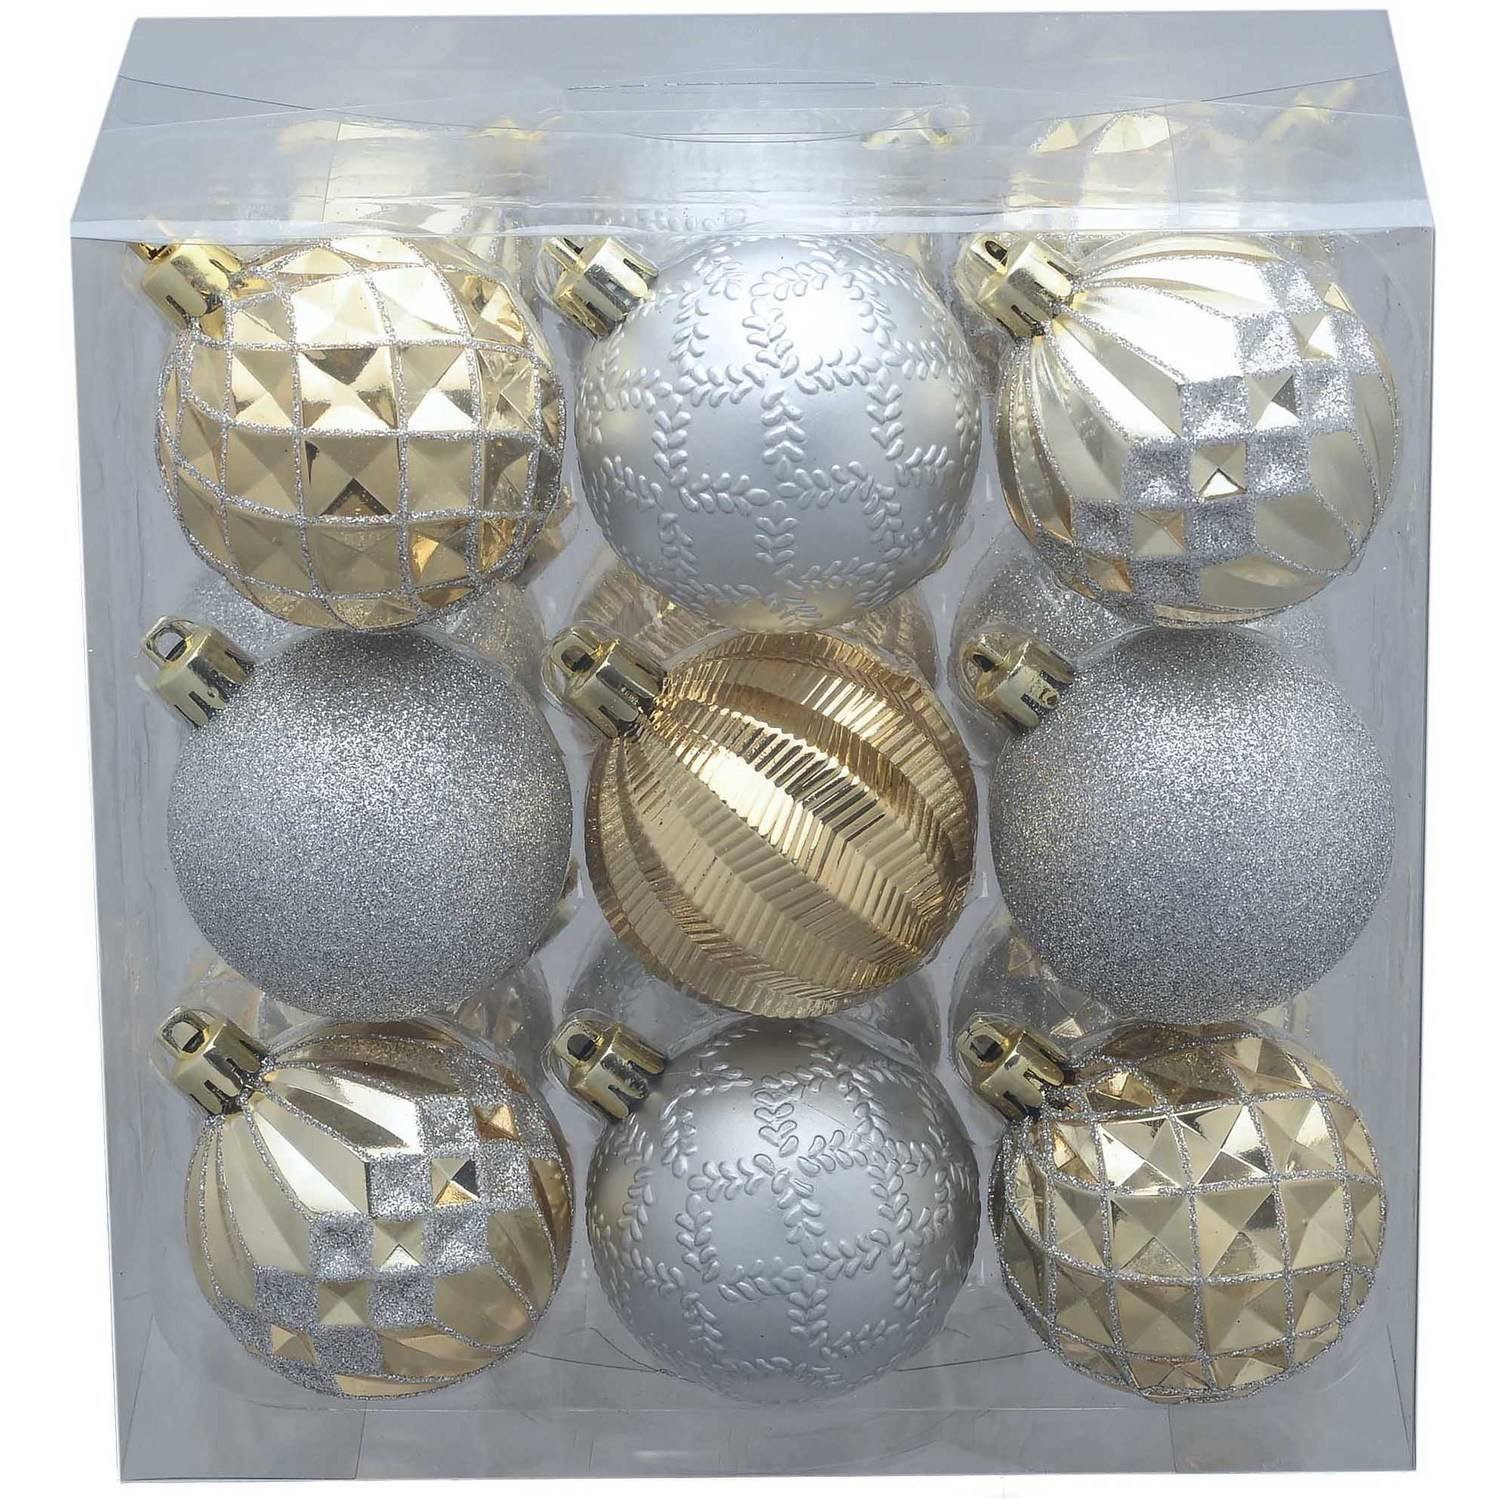 Product TitleHoliday Time 18-Pack Gold/Silver Round Ornaments